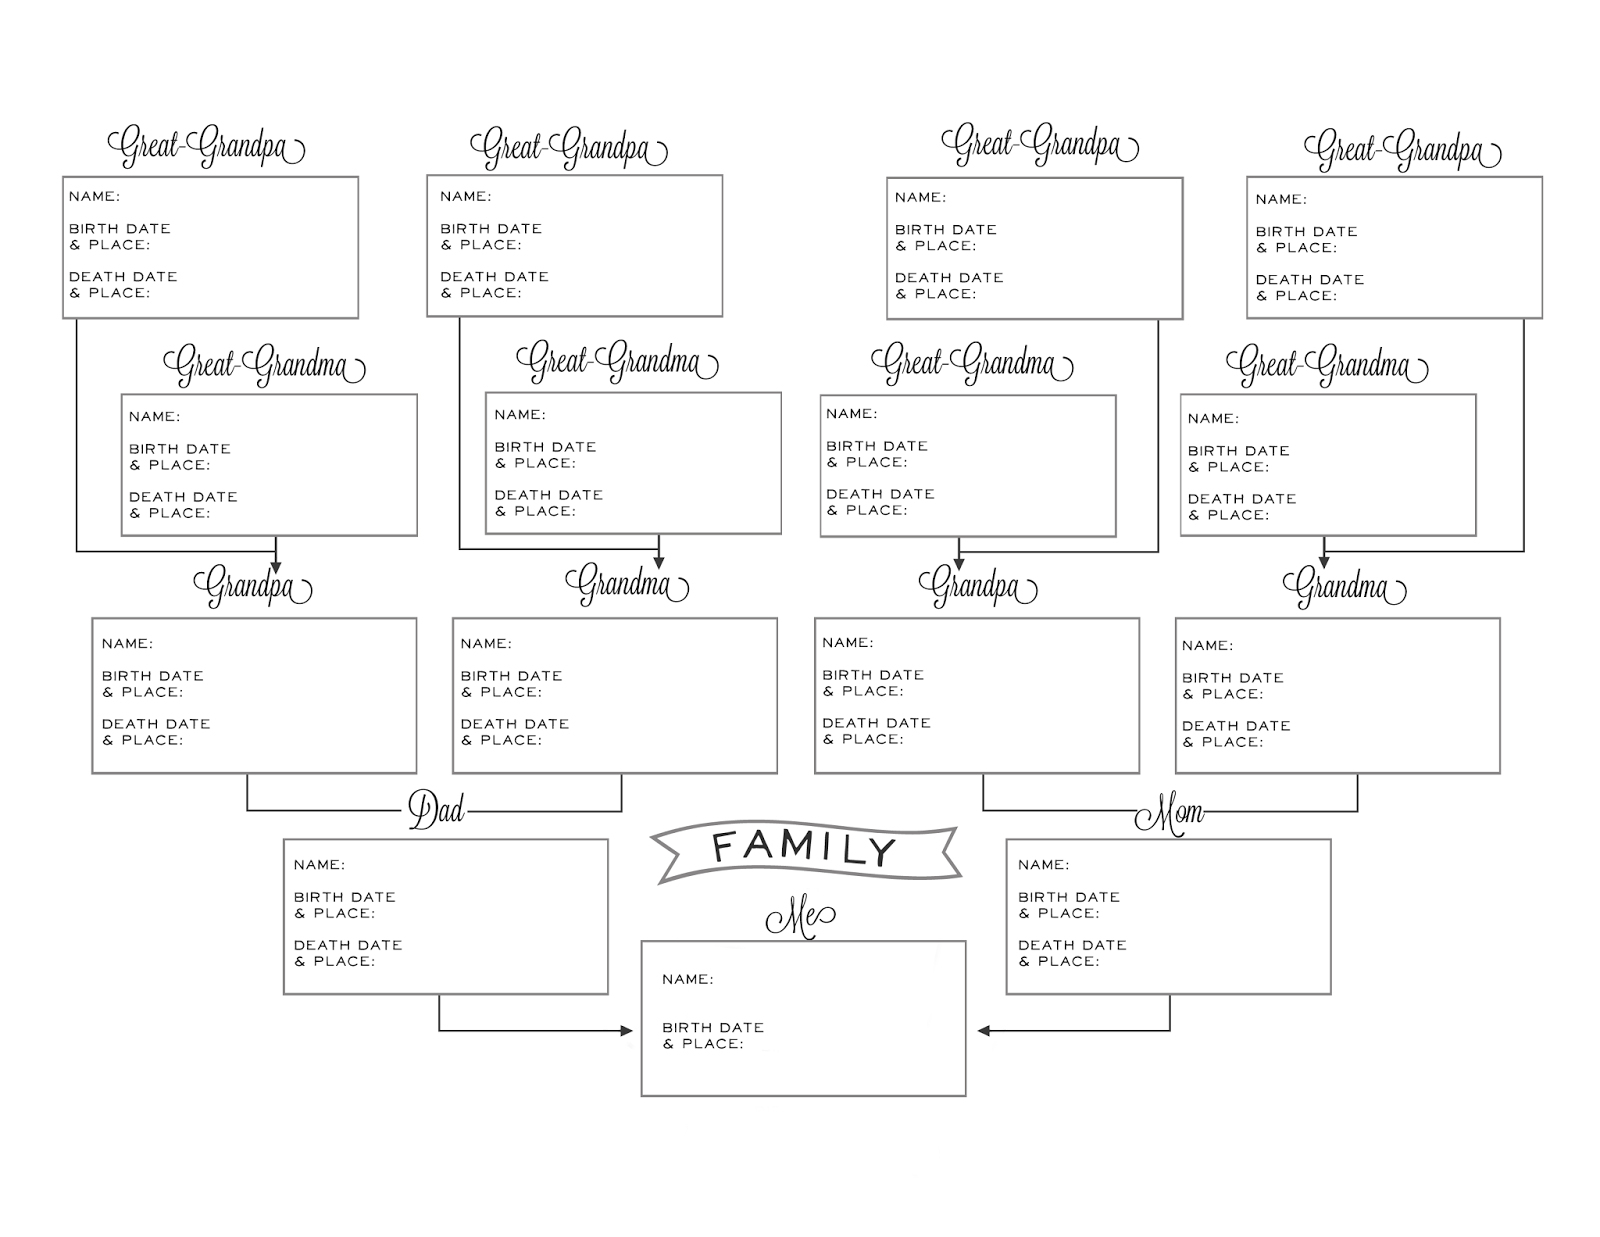 Printable Pedigree Chart | Ellipsis - Free Printable Genealogy Worksheets